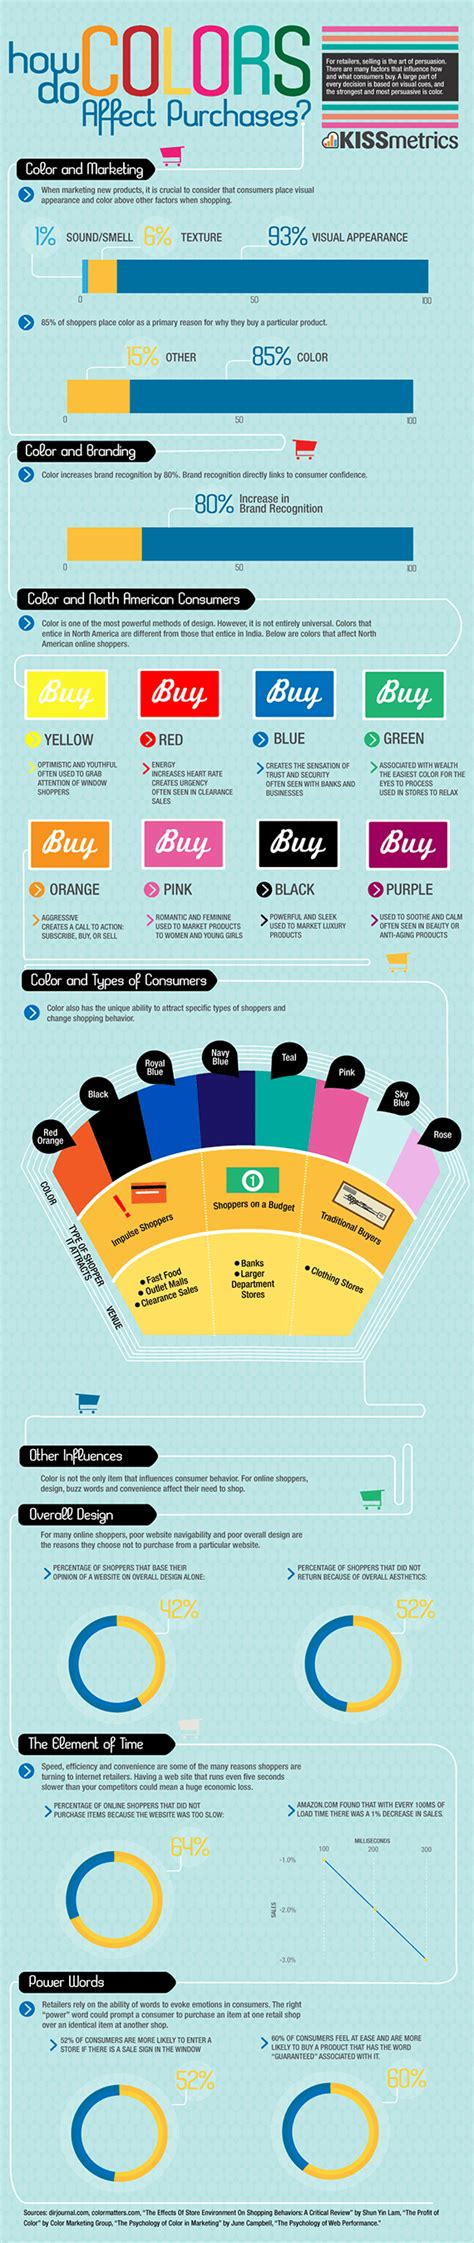 Room Color Psychology by How Do Colors Affect Purchases Infographic